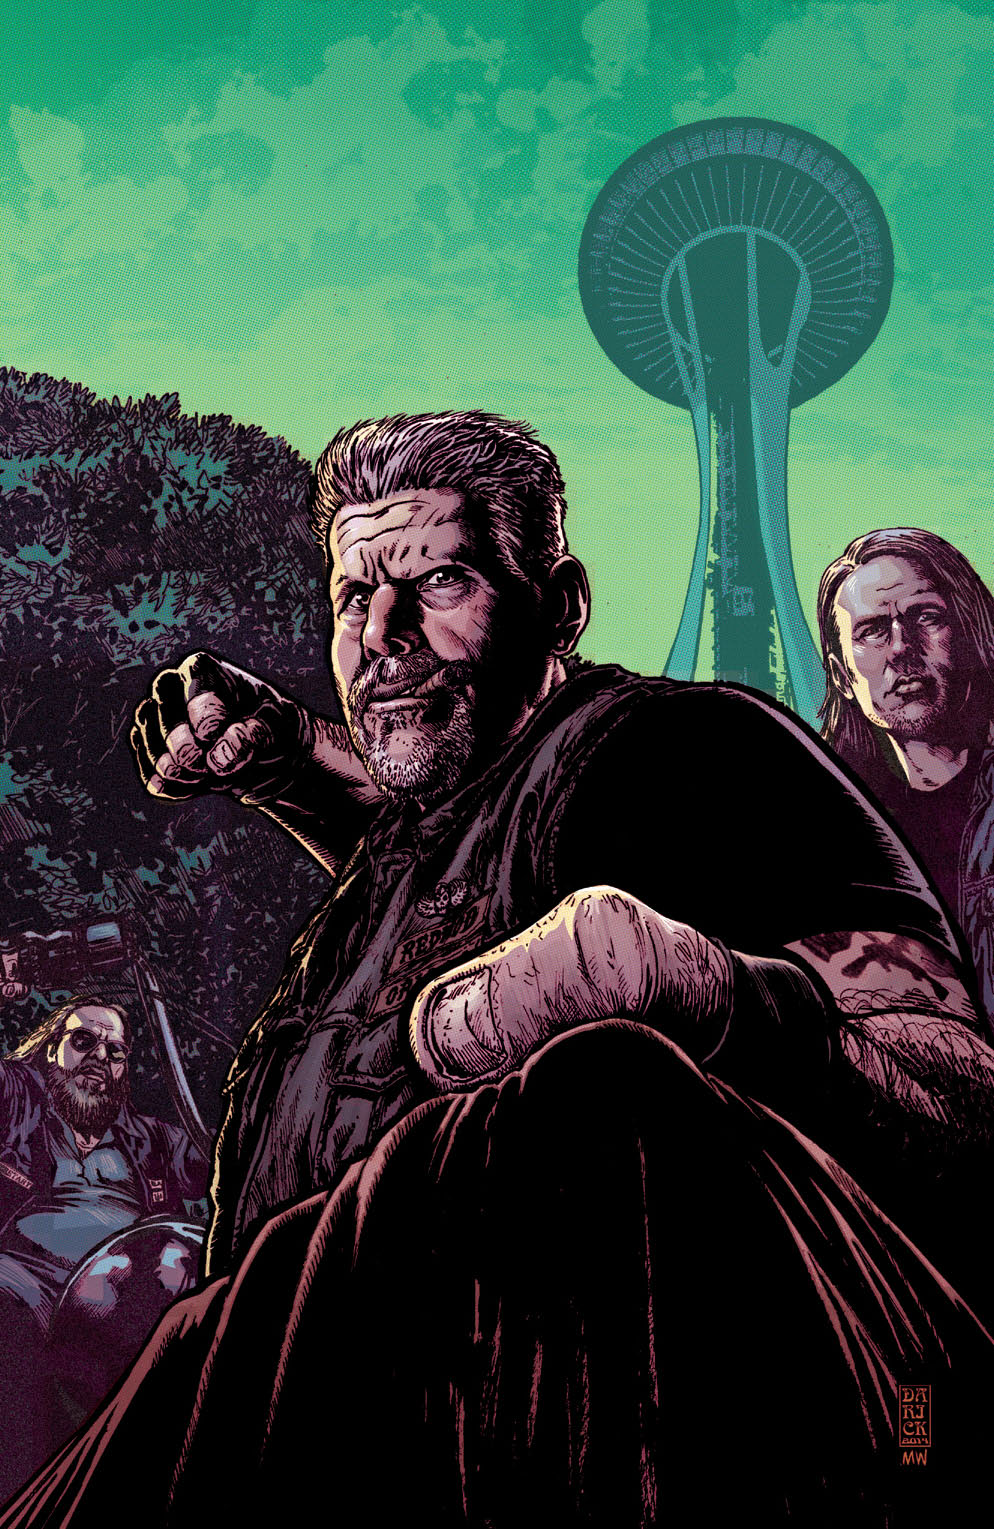 Sons of Anarchy #7 - ECCC